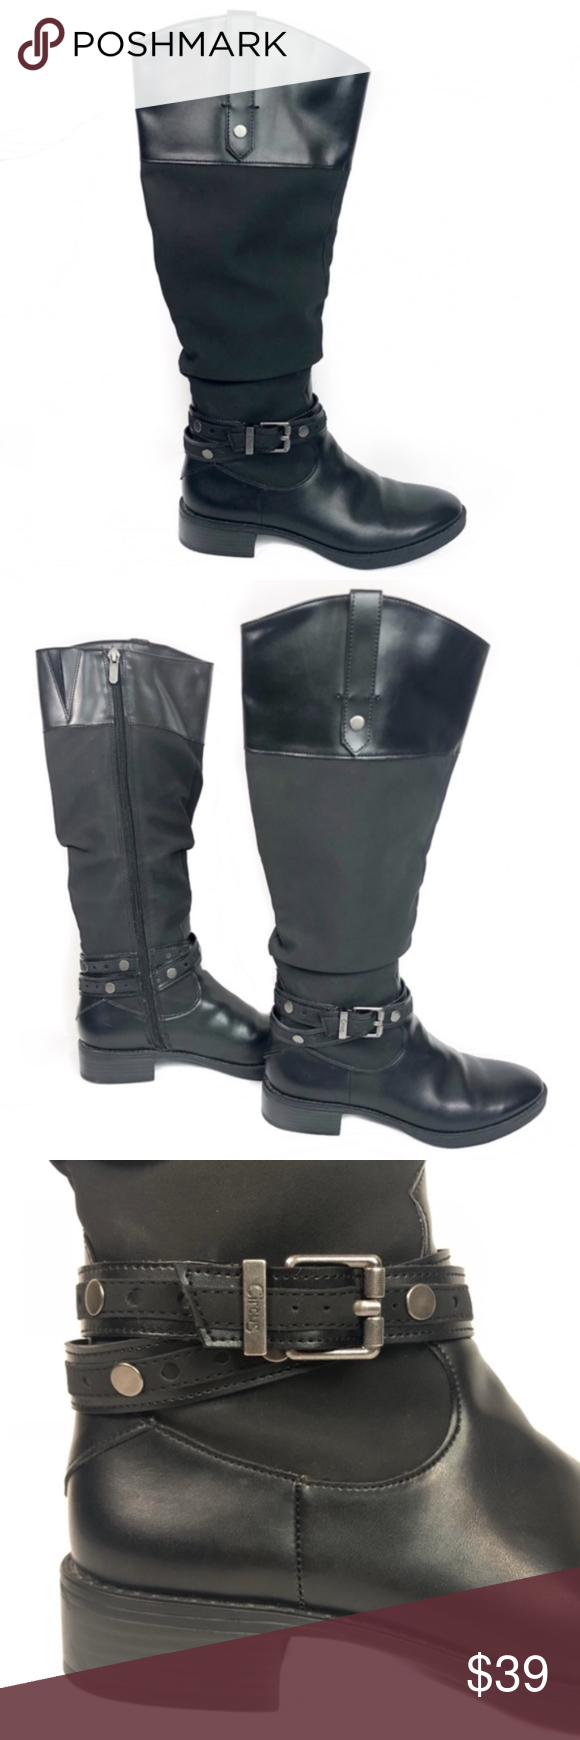 b7557e7a30406 Circus Sam Edelman Paxton Riding Tall Knee Boots Great semi slouchy boots  that are perfect for